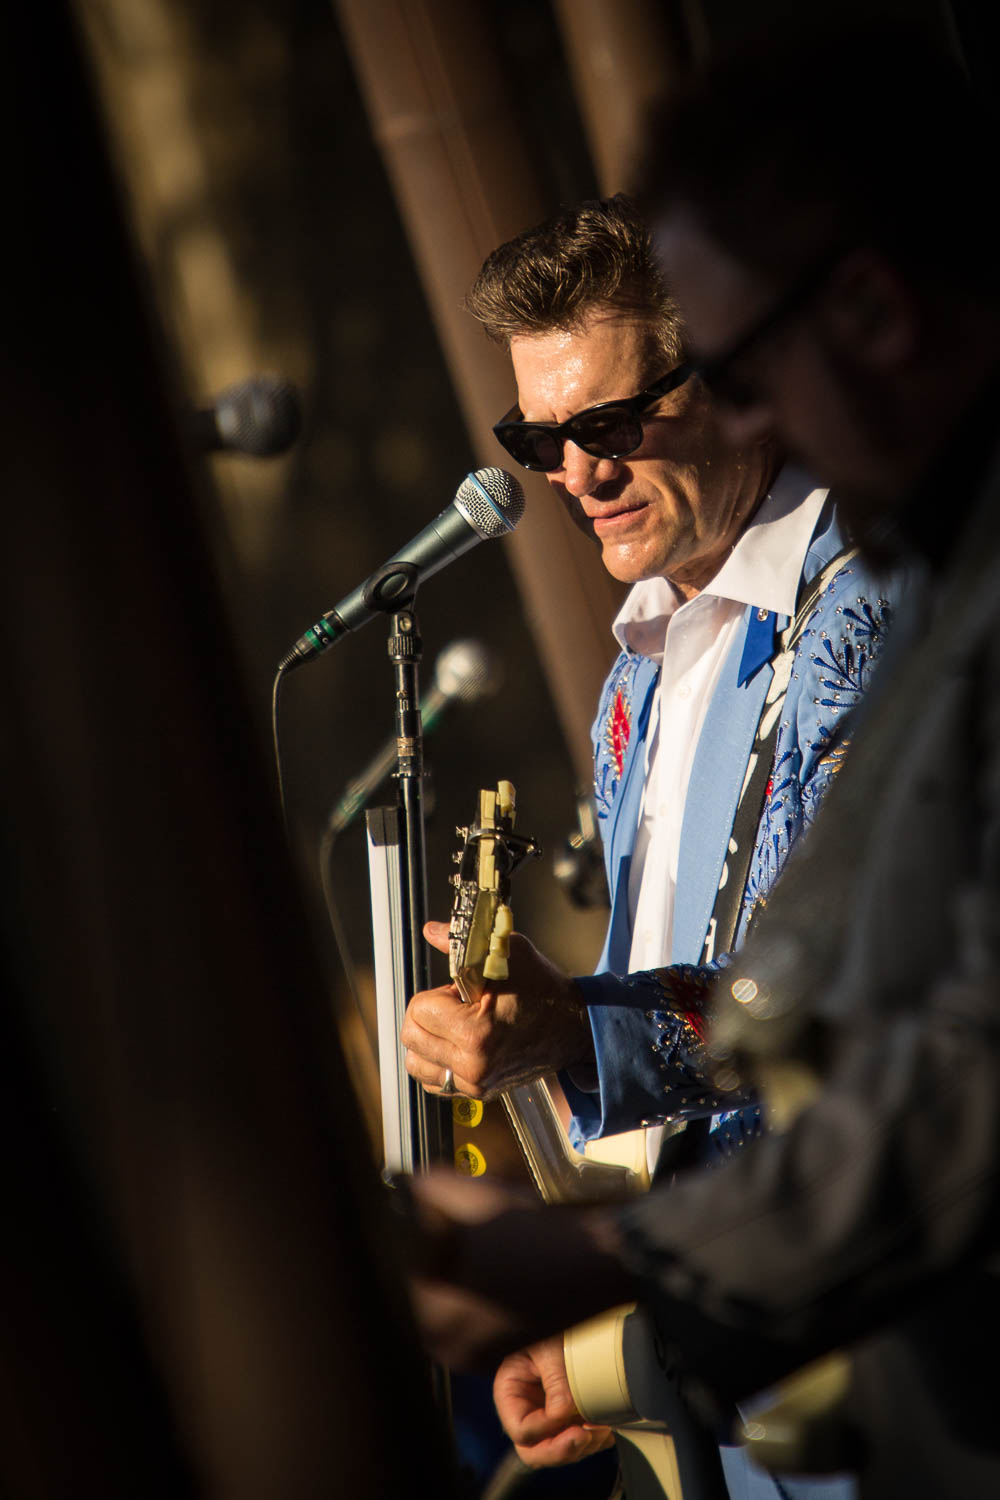 Rodney Strong Concerts 2014 2 Chris Isaak-3561.jpg